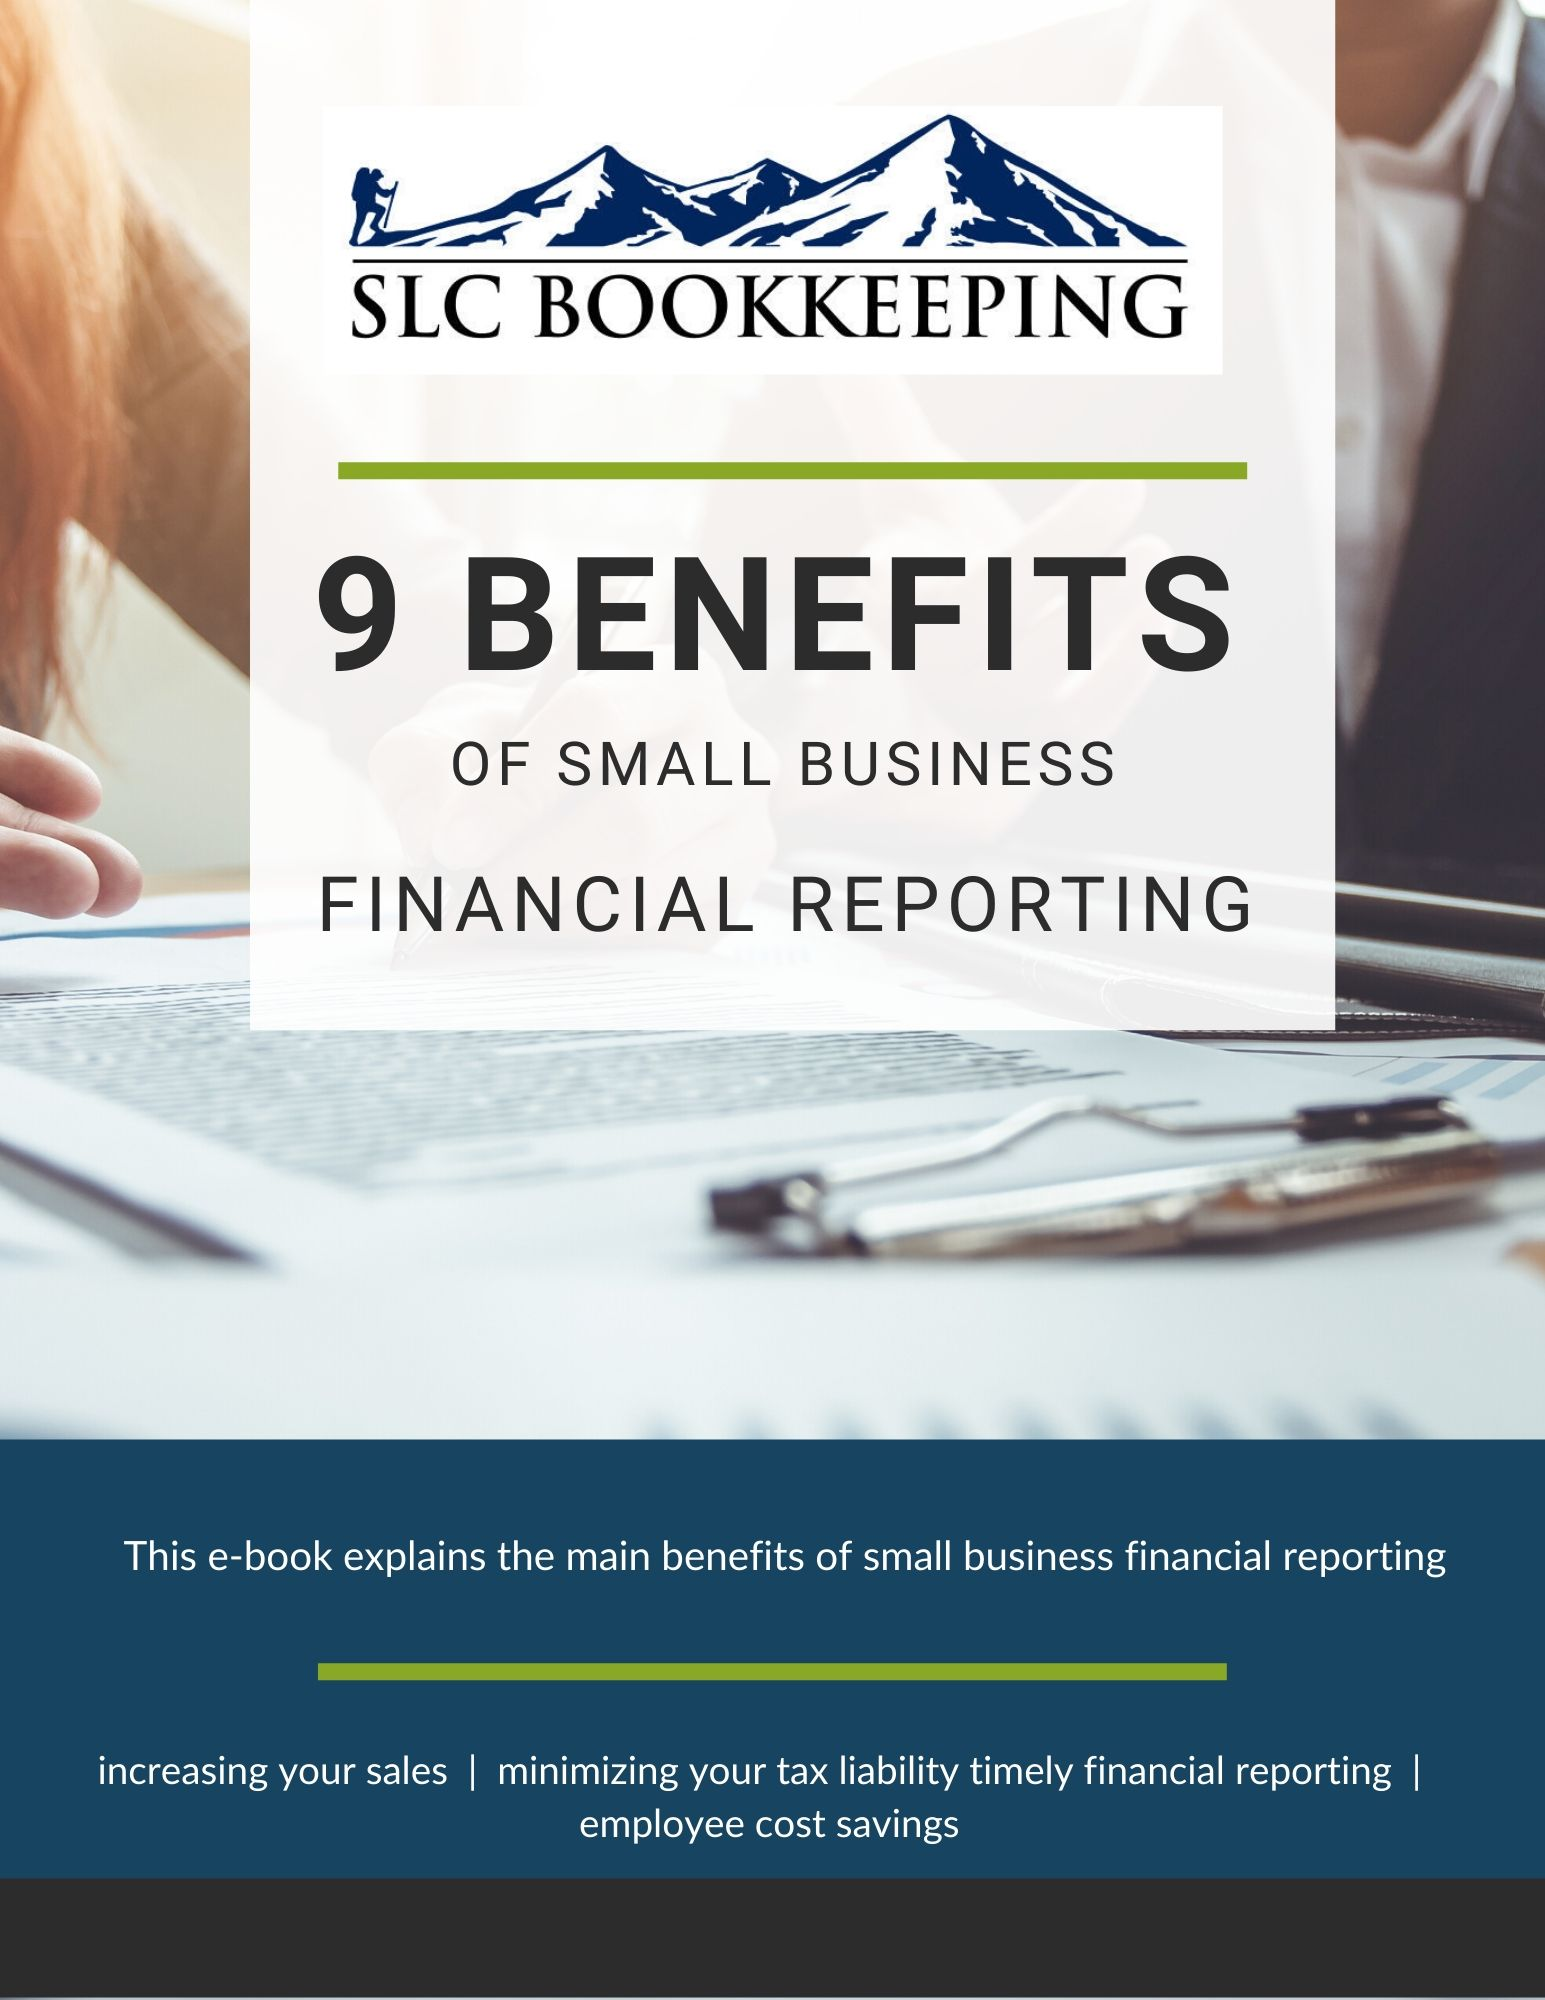 9 benefits of small business financial reporting